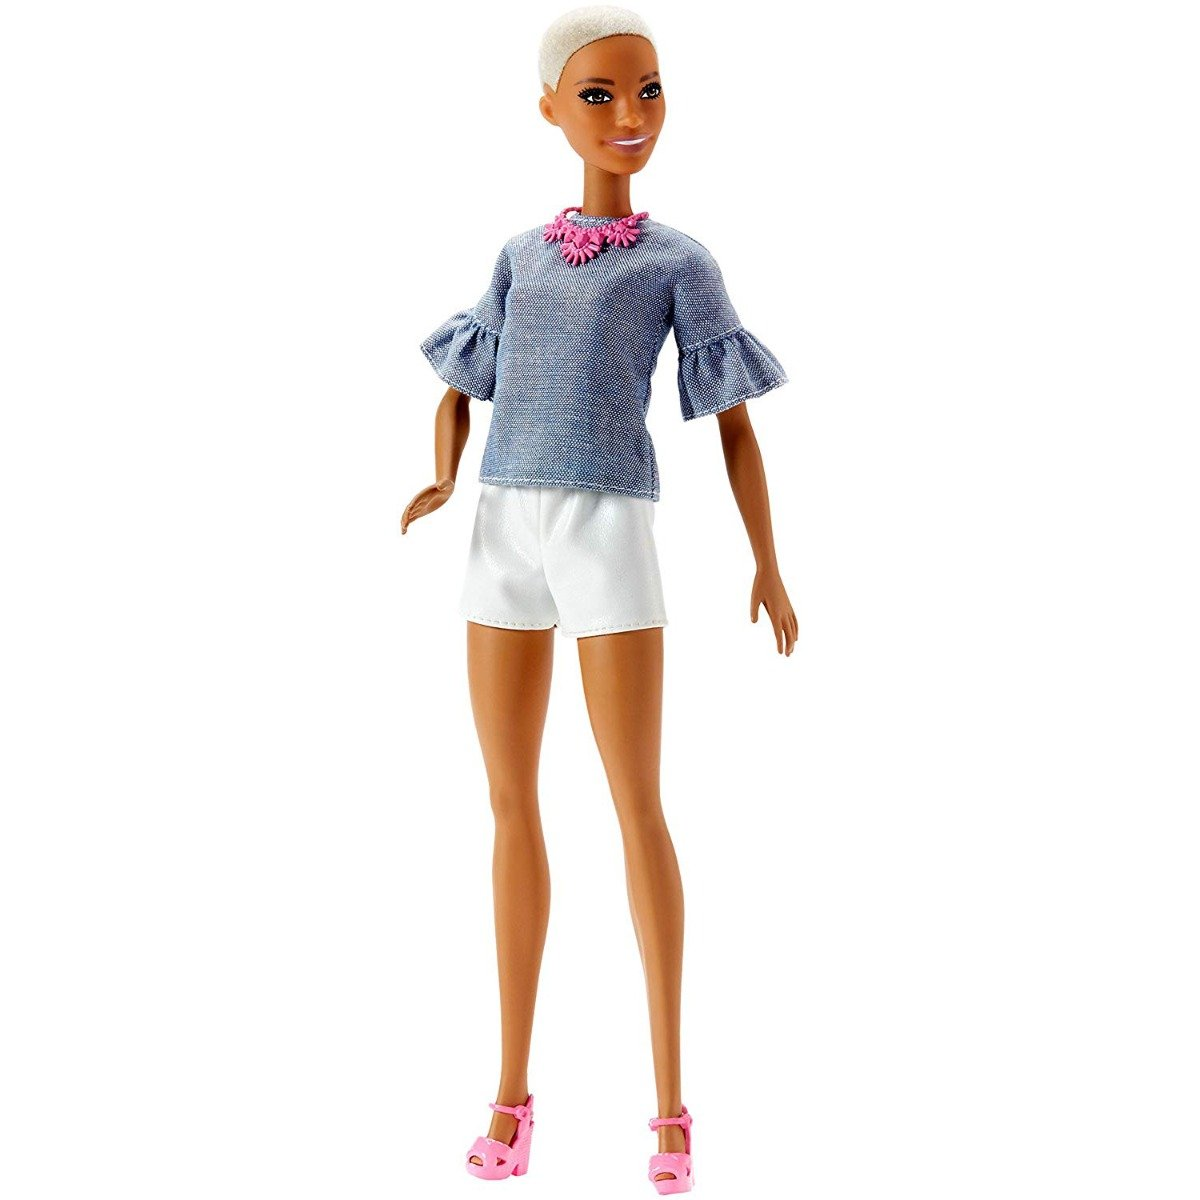 Papusa Barbie Fashionistas - Style, FHY40 imagine